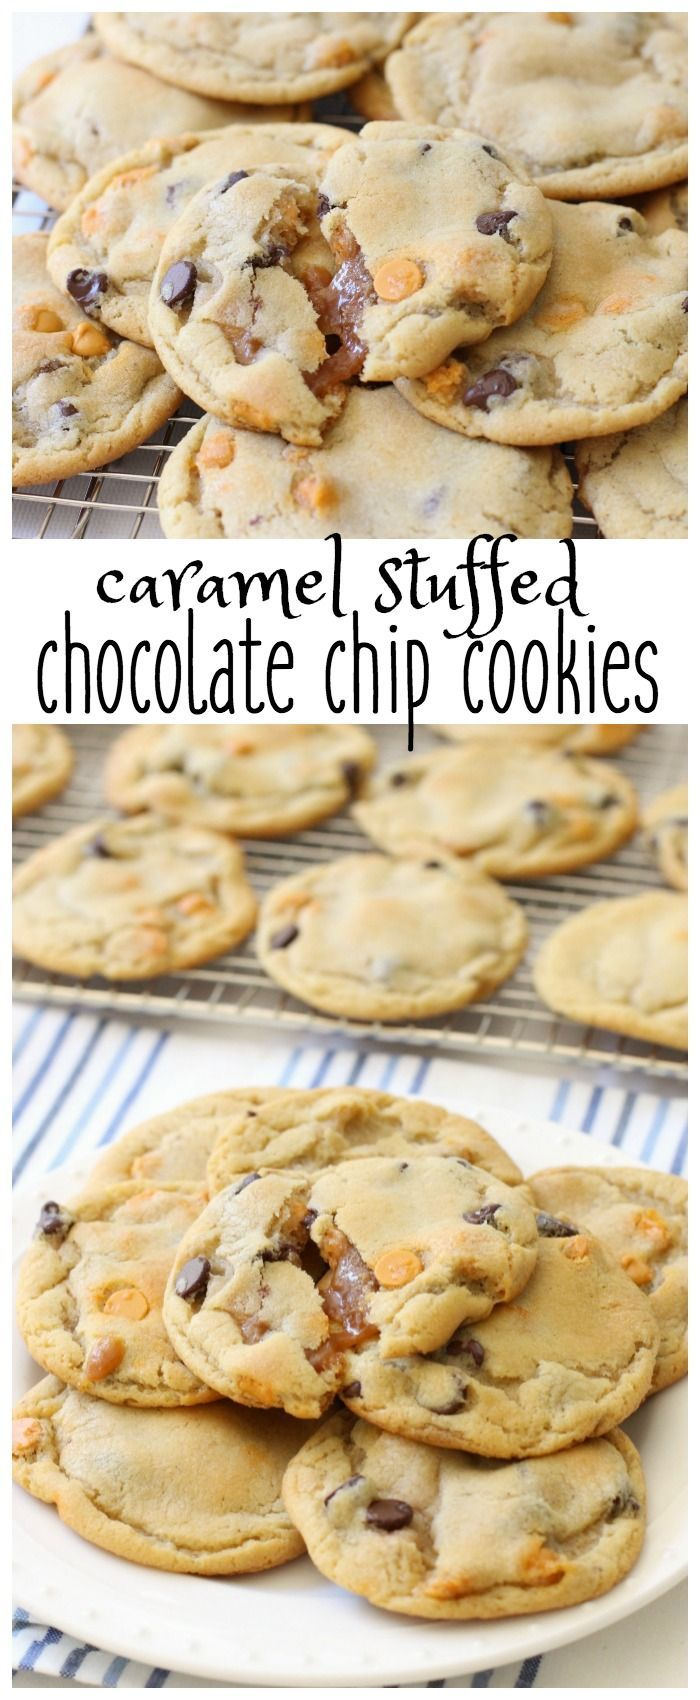 Caramel Stuffed Chocolate Chip Cookies- my favorite Chocolate Chip Cookie recipe stuffed with caramel chips and soft caramels! Amazing! From Butter With A Side of Bread